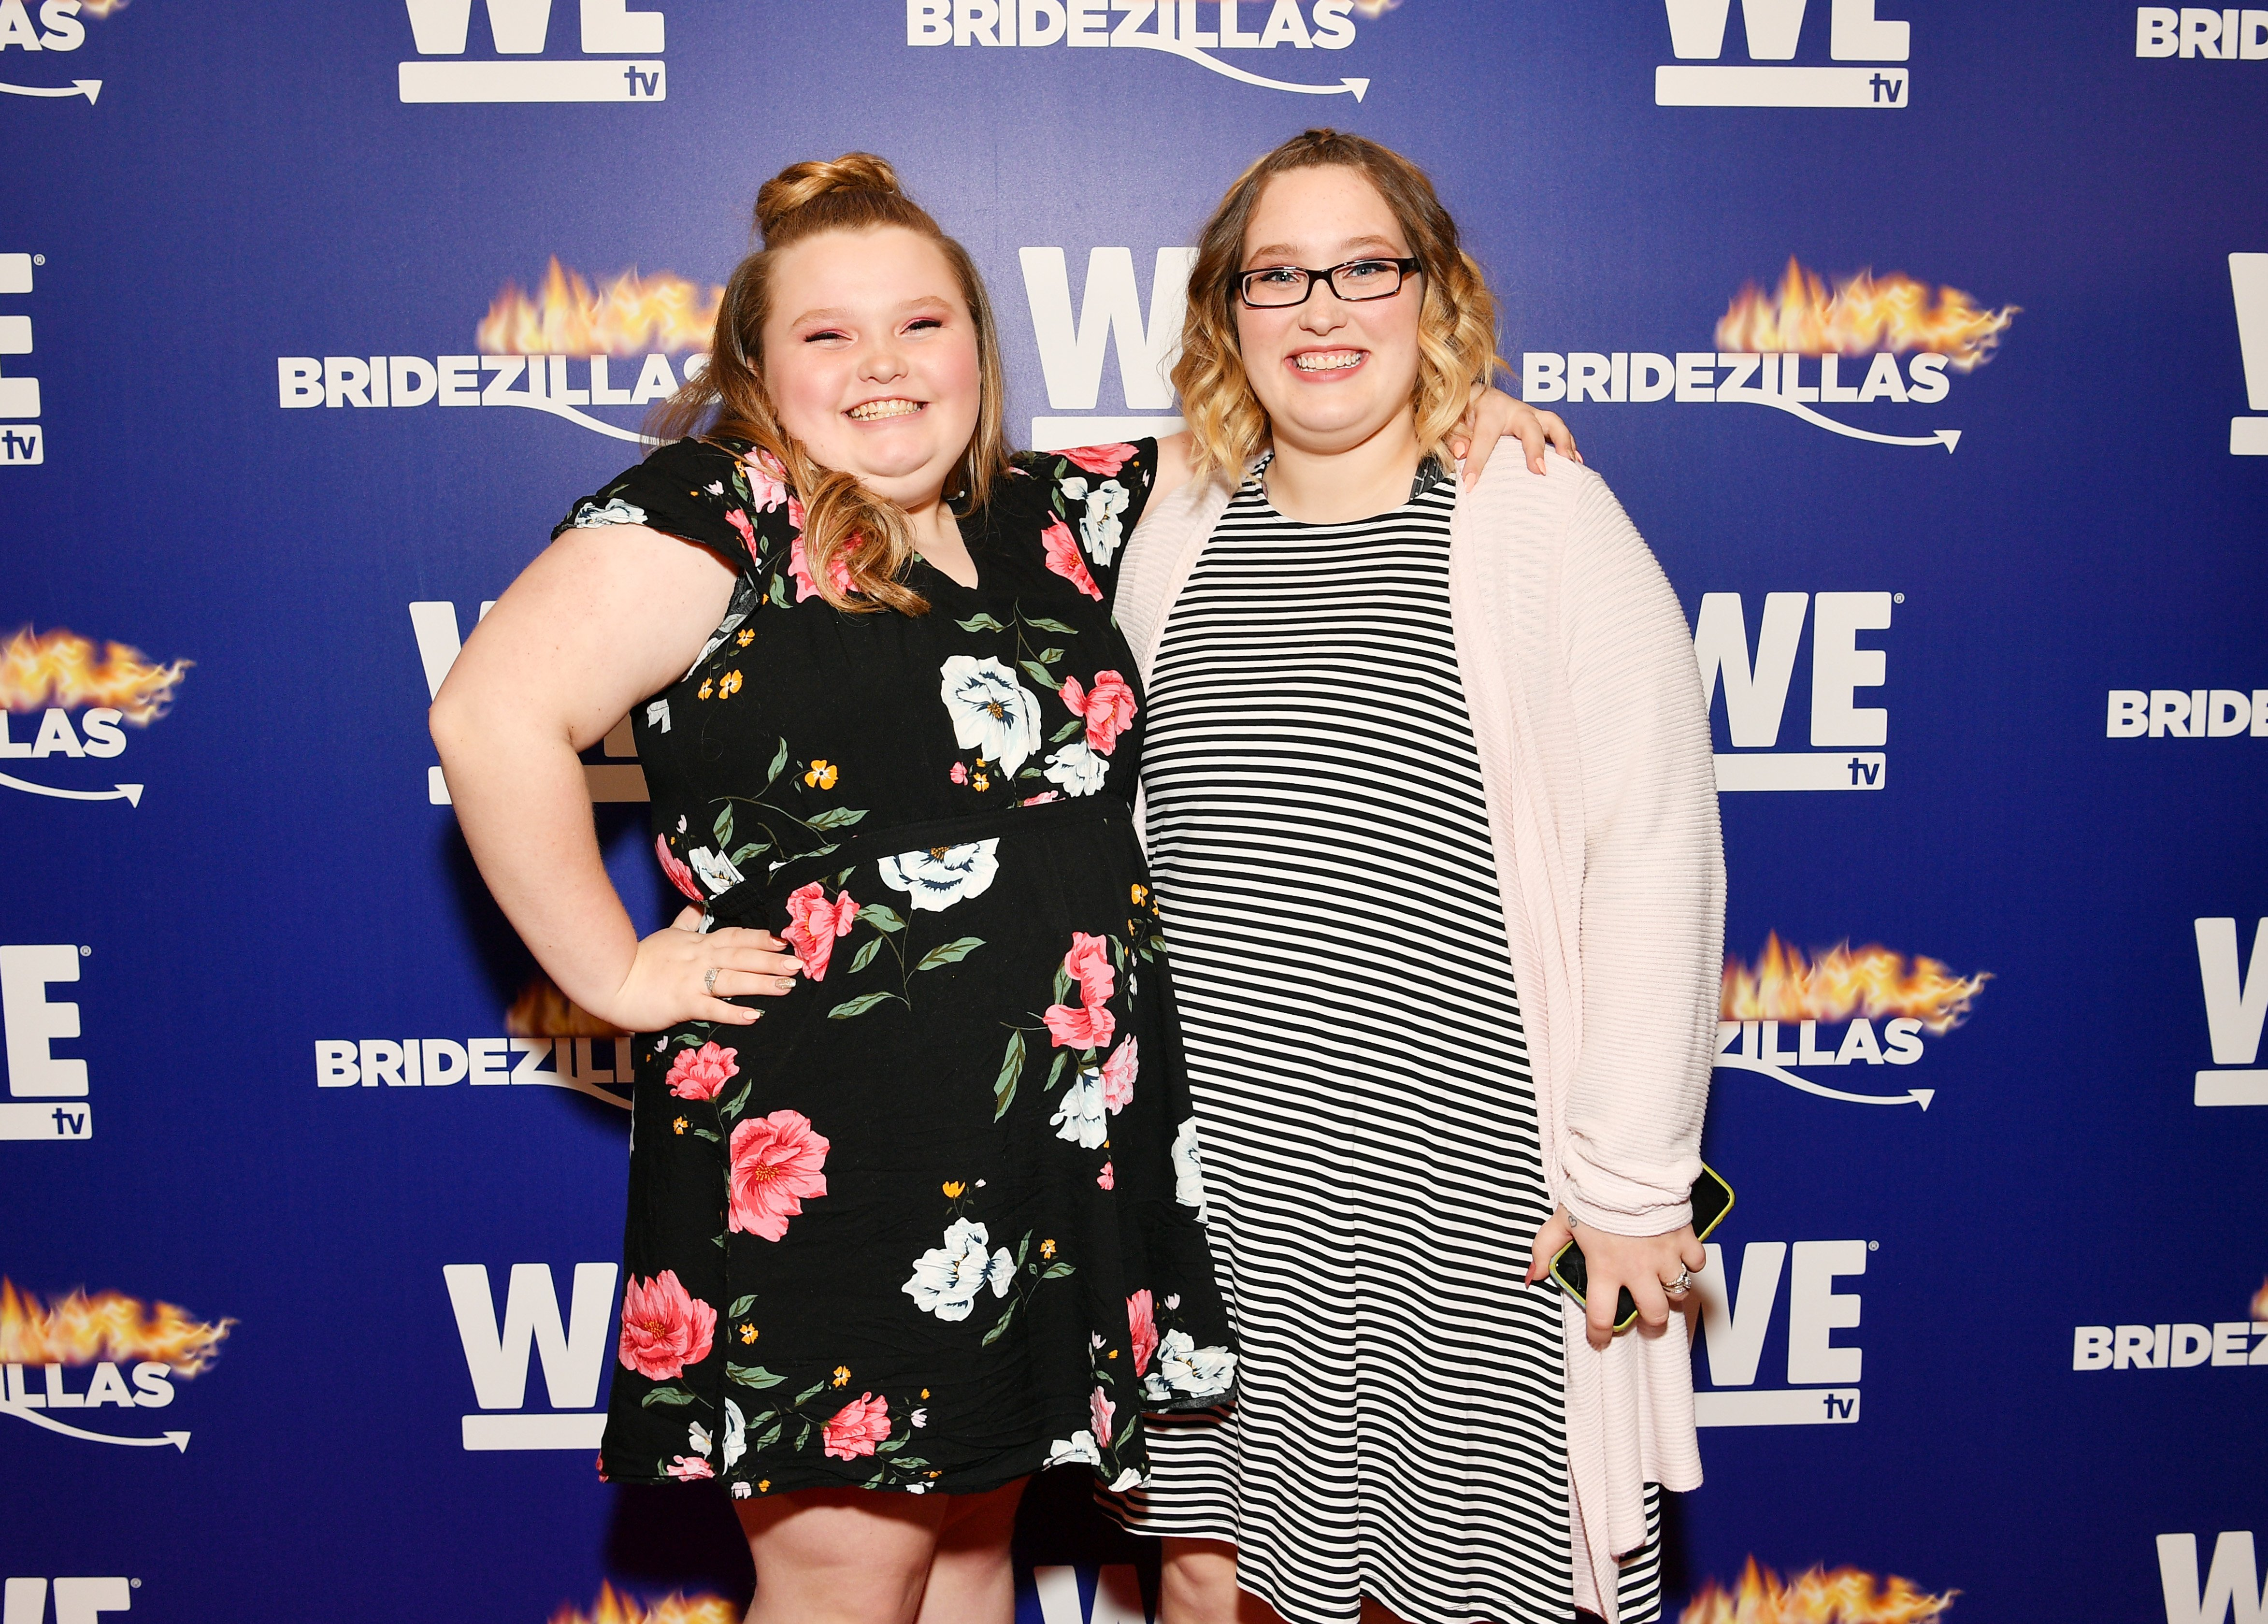 """Alana """"Honey Boo Boo"""" Thompson and Lauryn """"Pumpkin"""" Shannon at WE tv's premiere fashion event celebrating the return of """"Bridezillas,"""" 2019. 